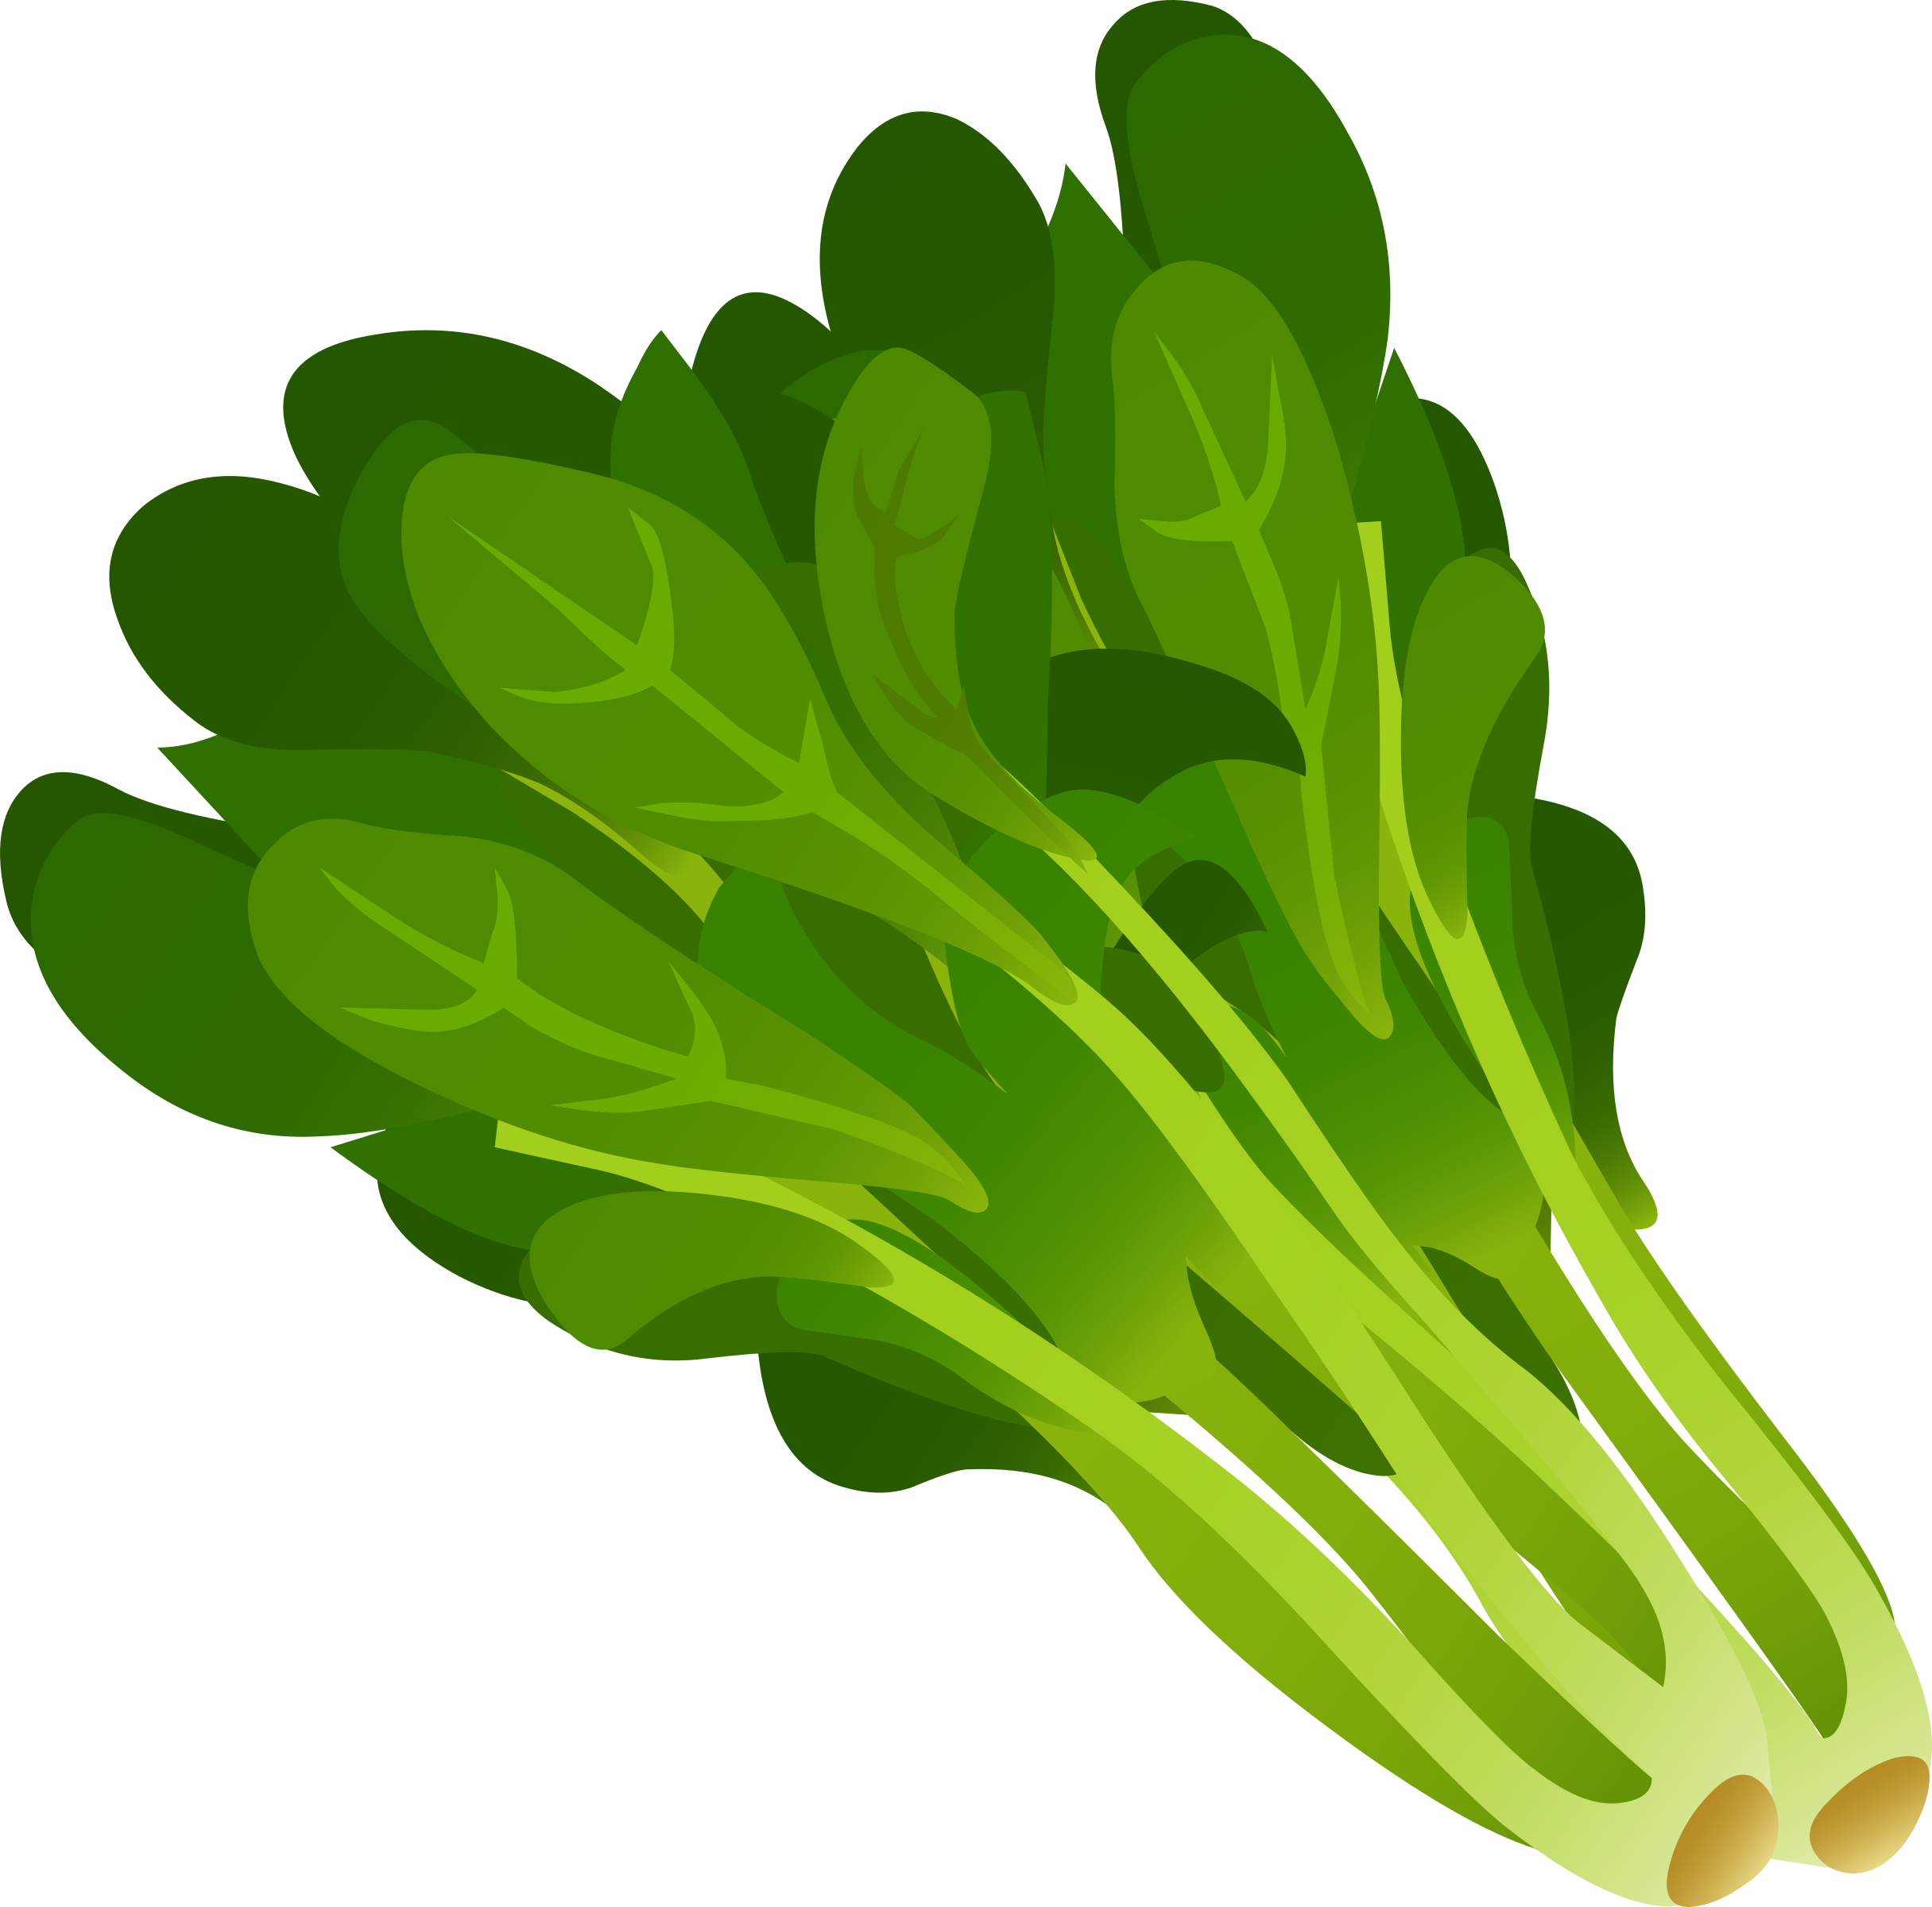 clipart freeuse download Kangkong free on dumielauxepices. Vegetables clipart